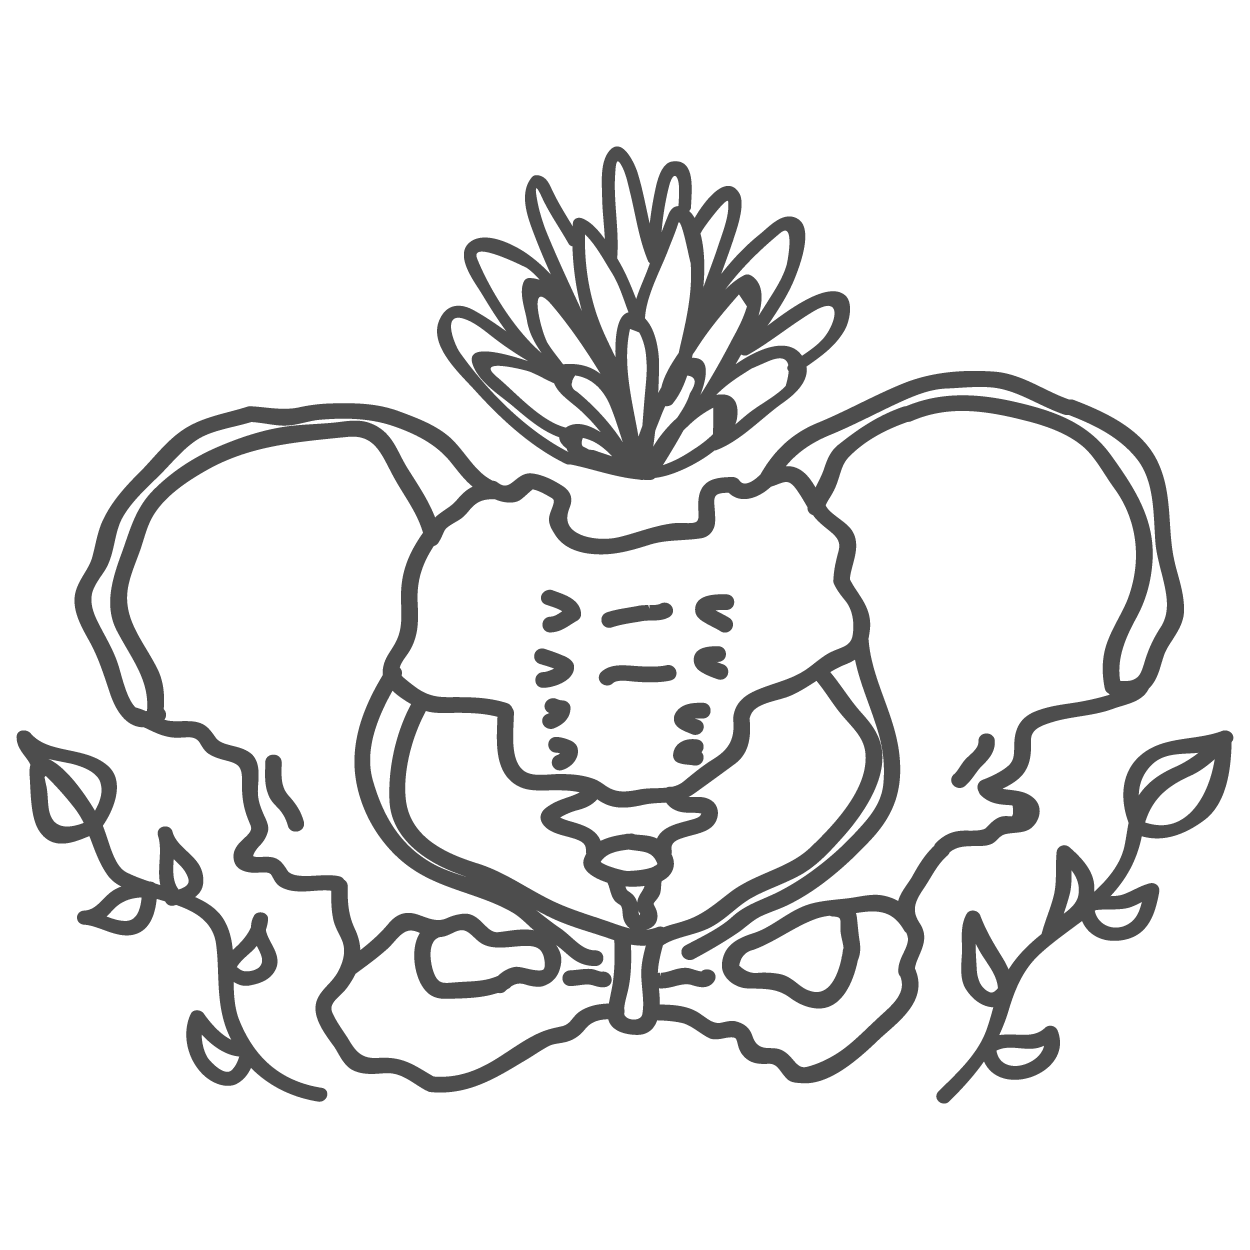 richmond doula project logo: illustration of hip bones and flower